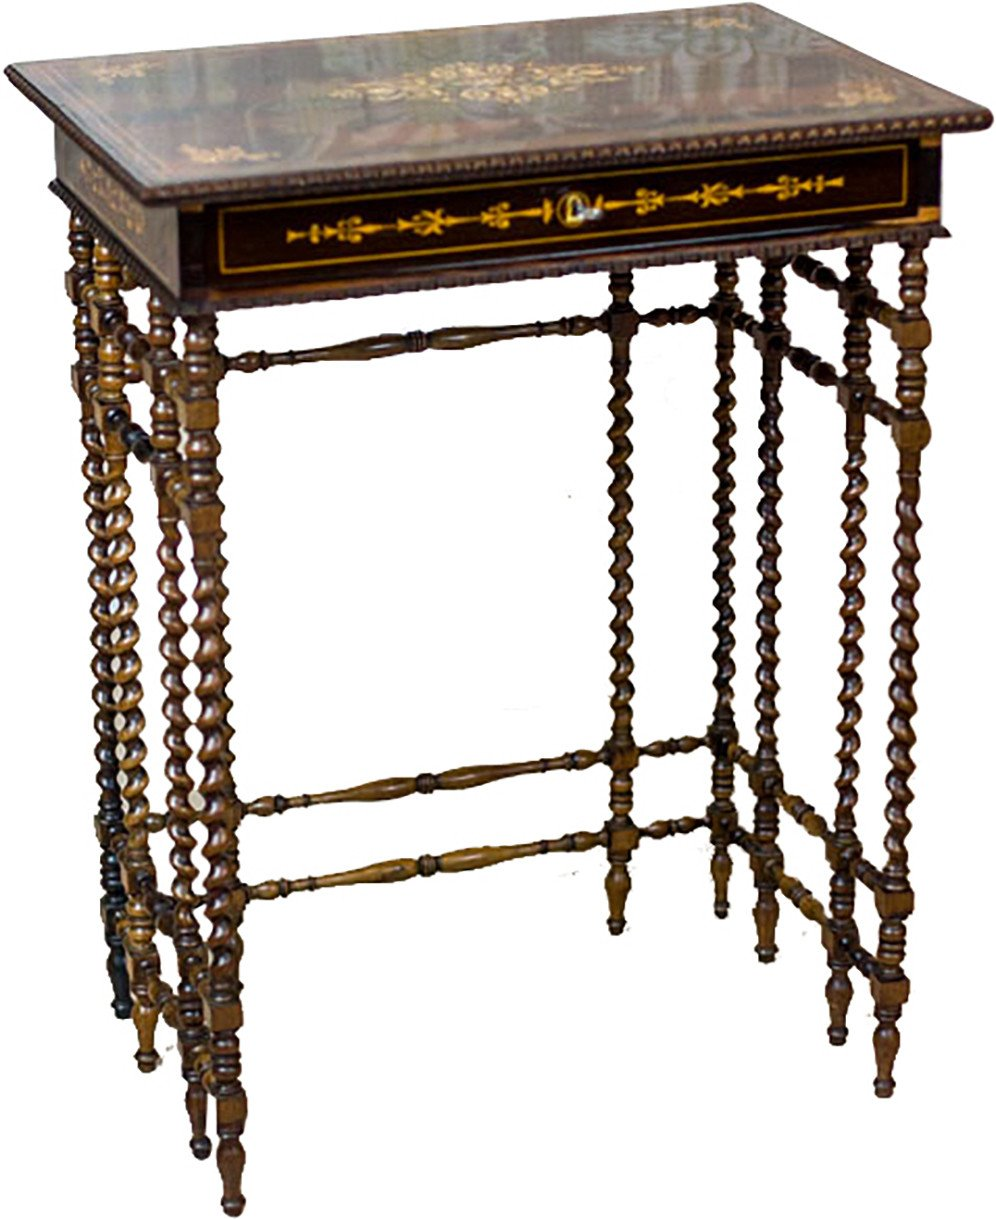 Intarsiated Table, France, 19th C.